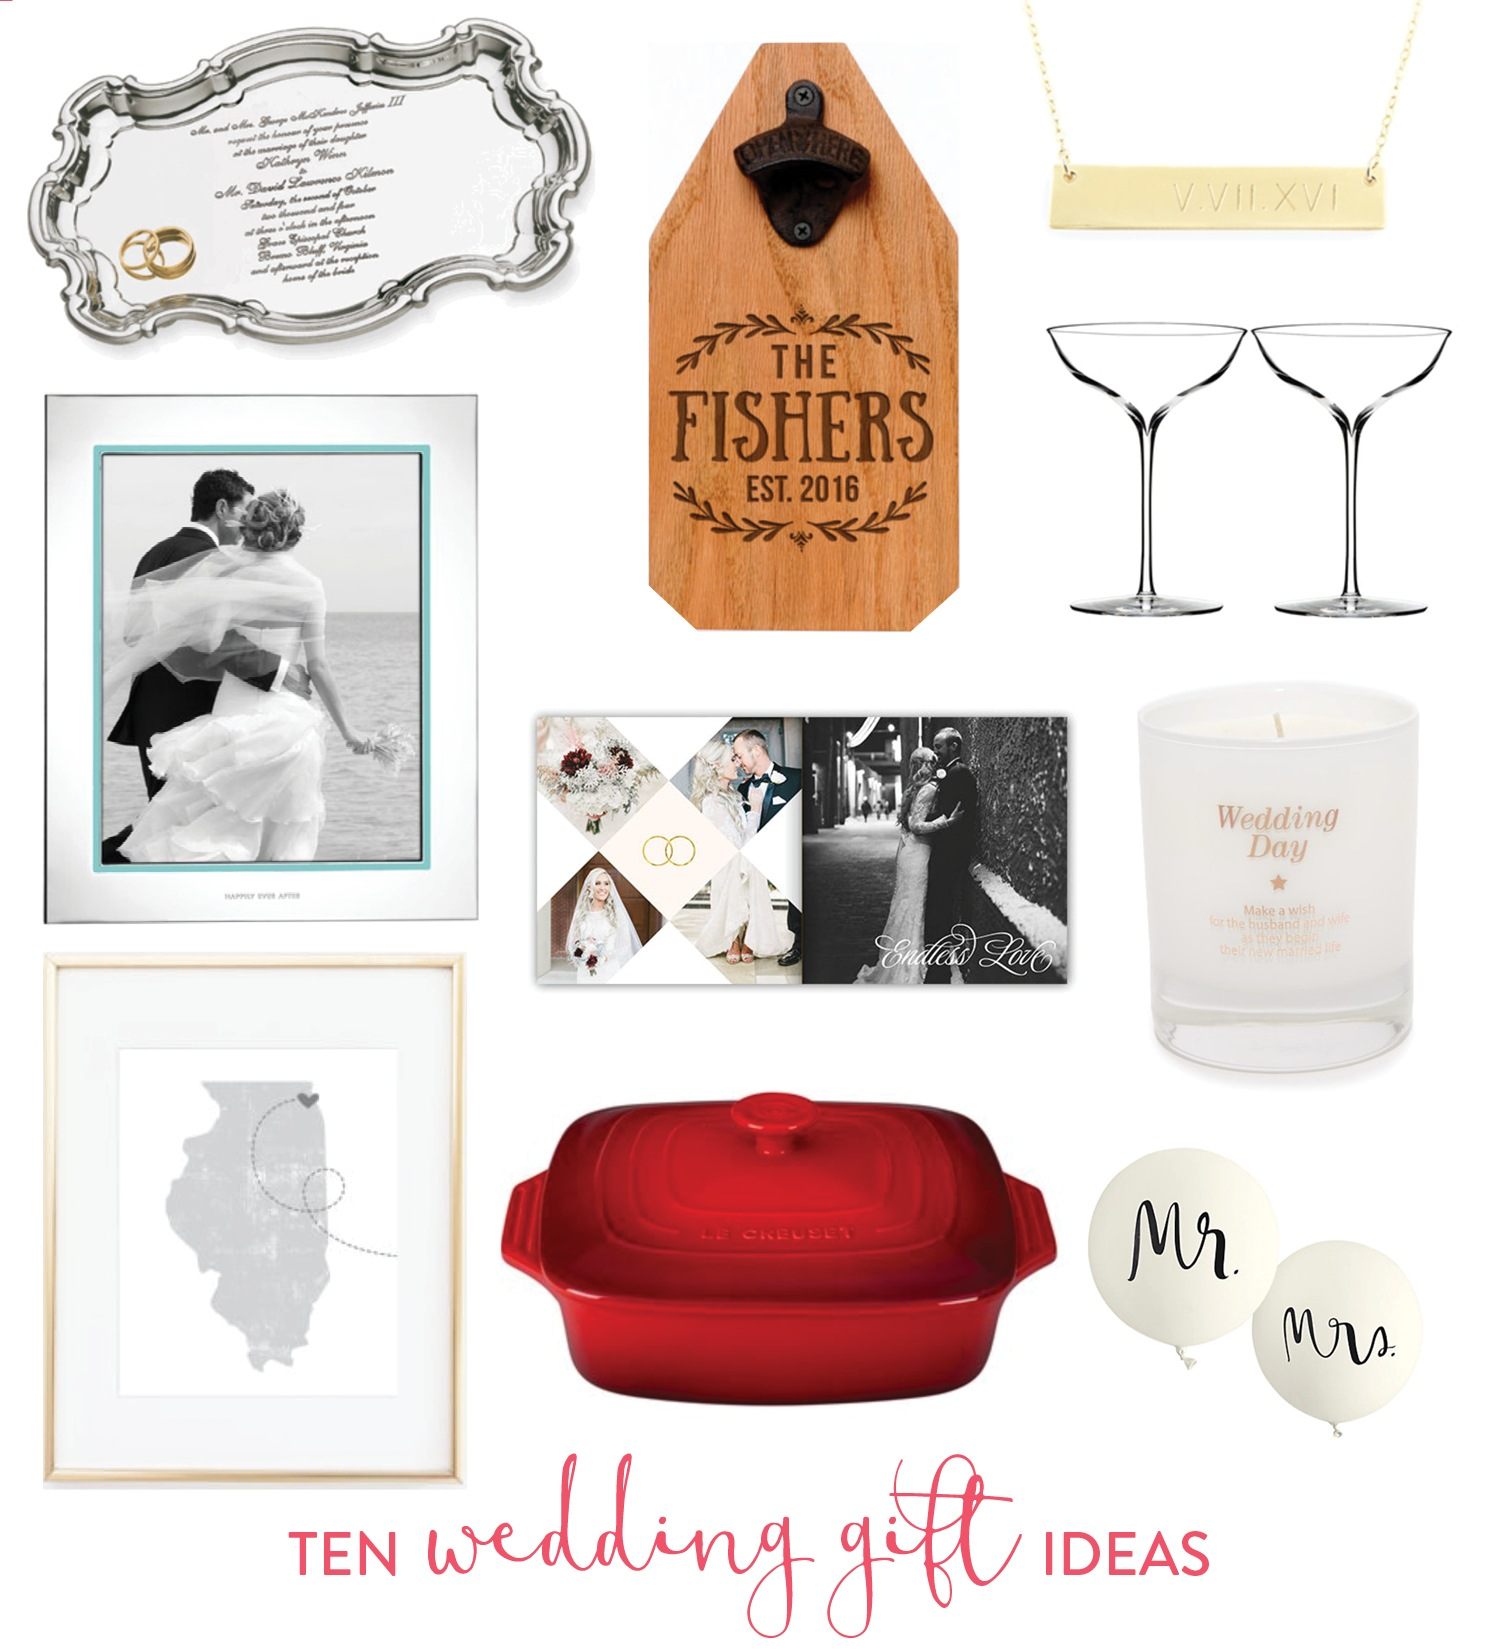 Great Wedding Gifts Ideas: 10 Wedding Gift Ideas